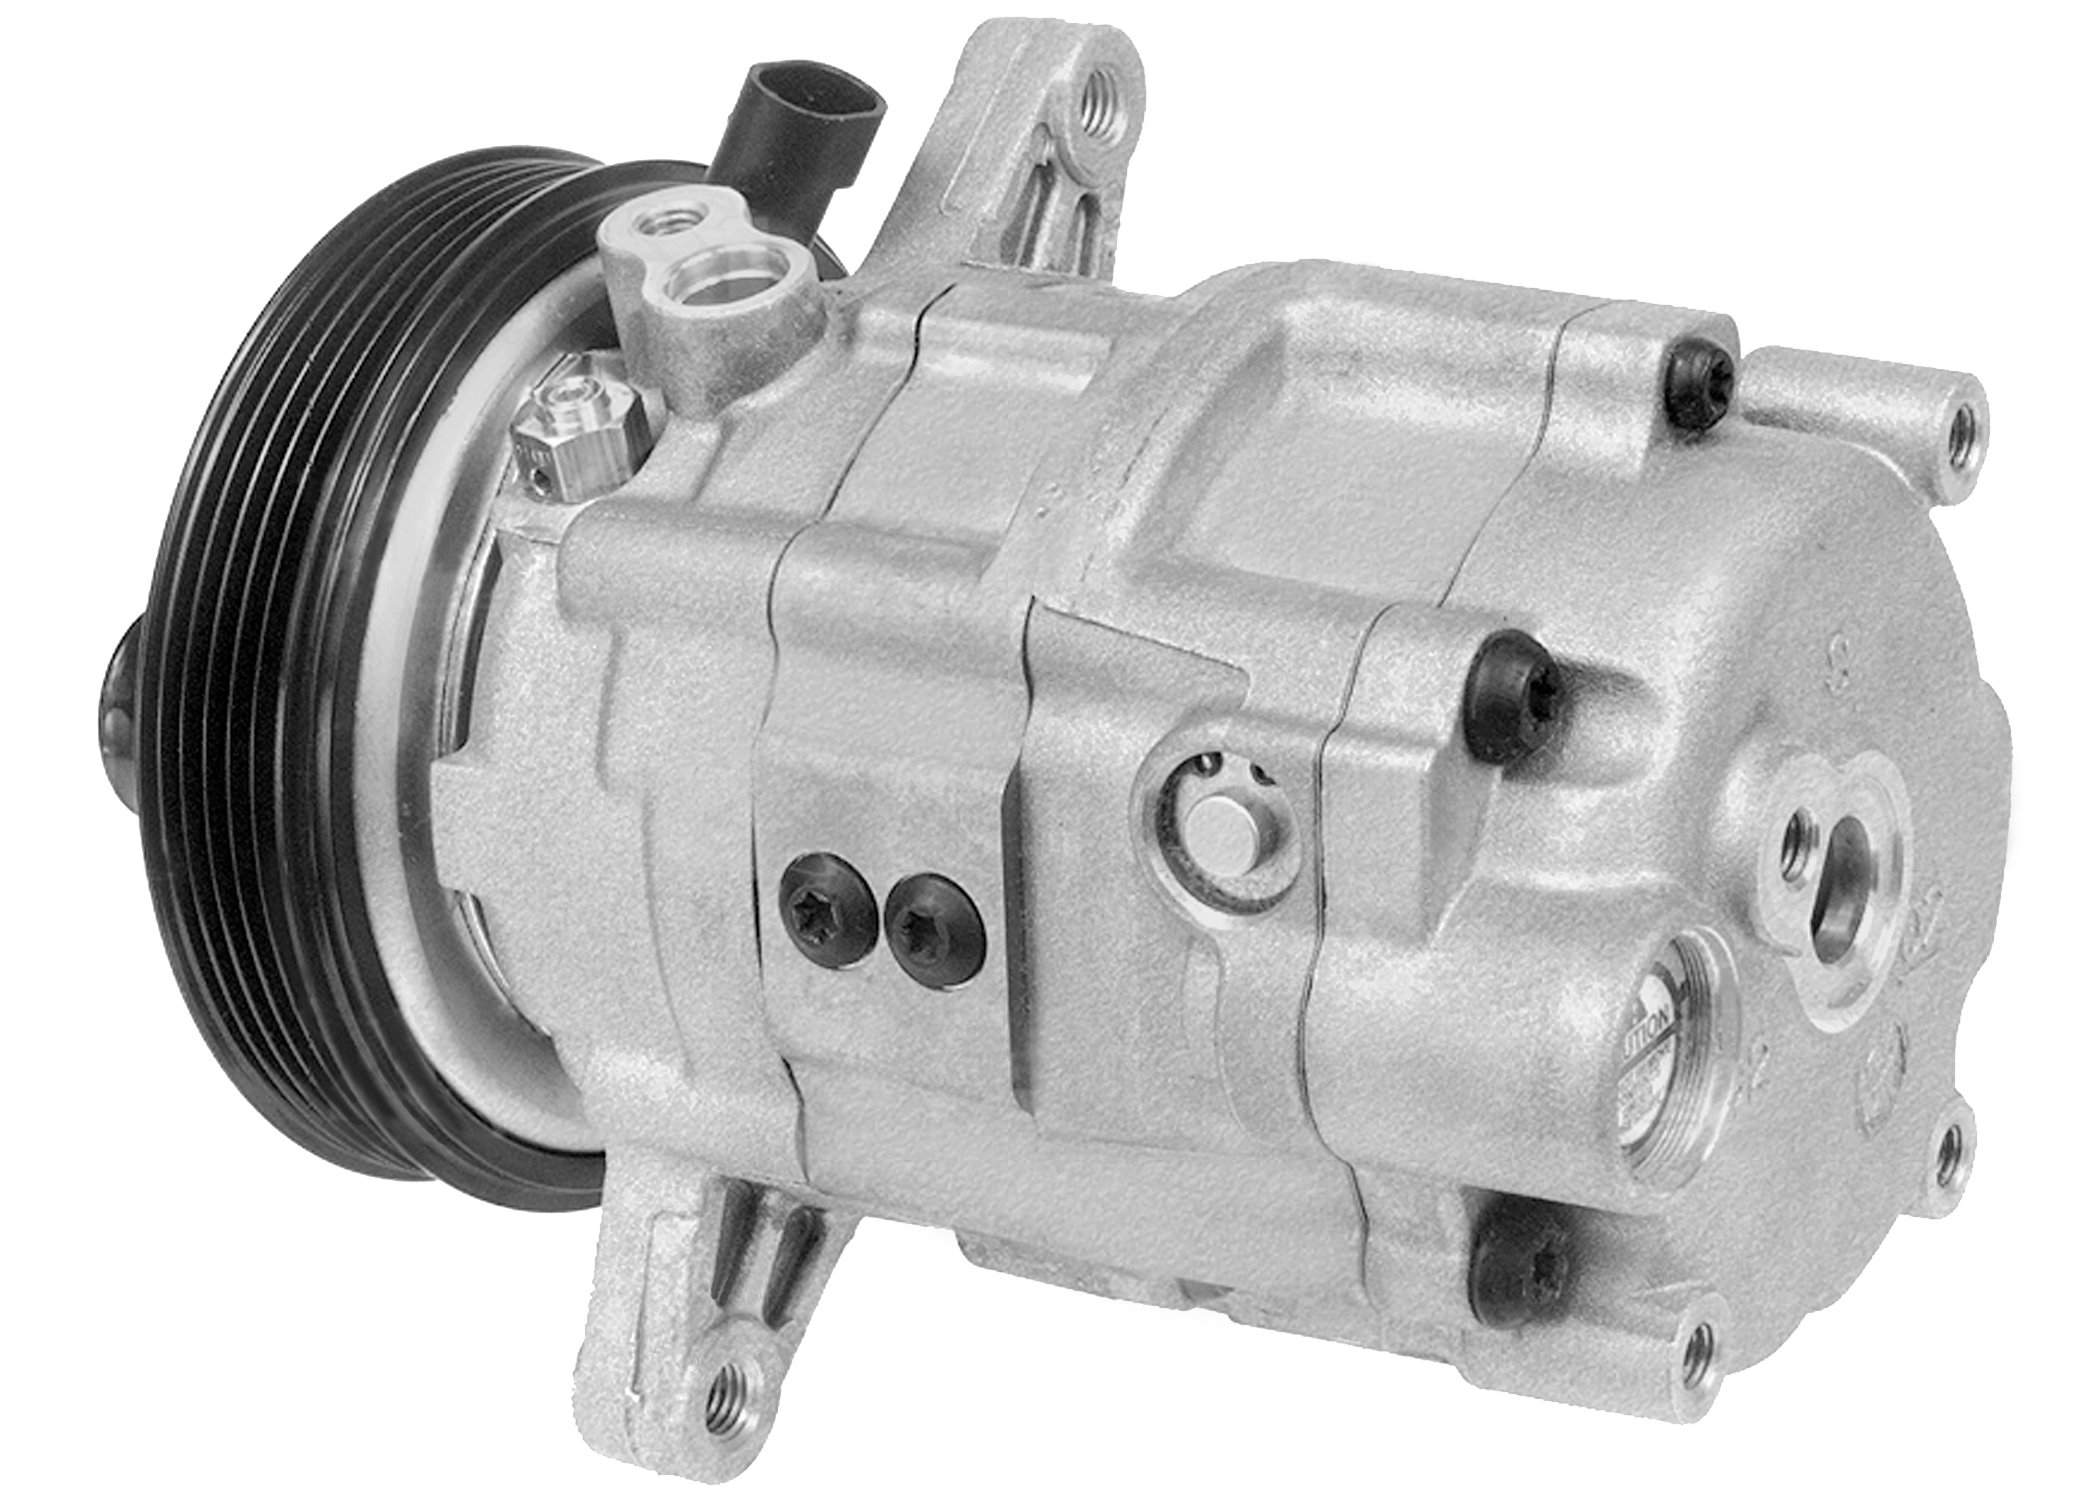 ACDelco 15-21475 Professional Air Conditioning Compressor, Remanufactured